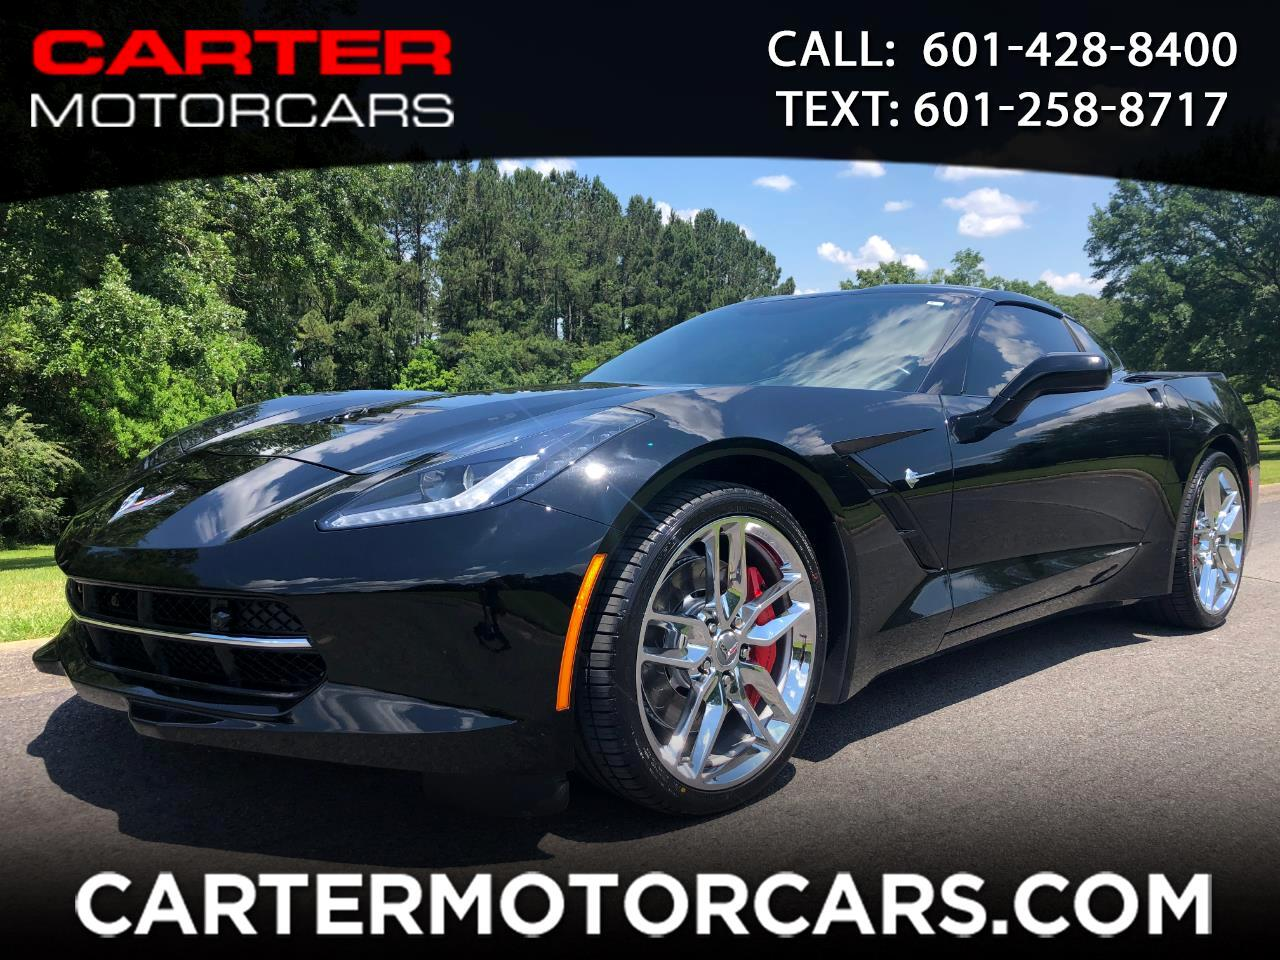 2016 Chevrolet Corvette Z51 2LT Coupe Automatic